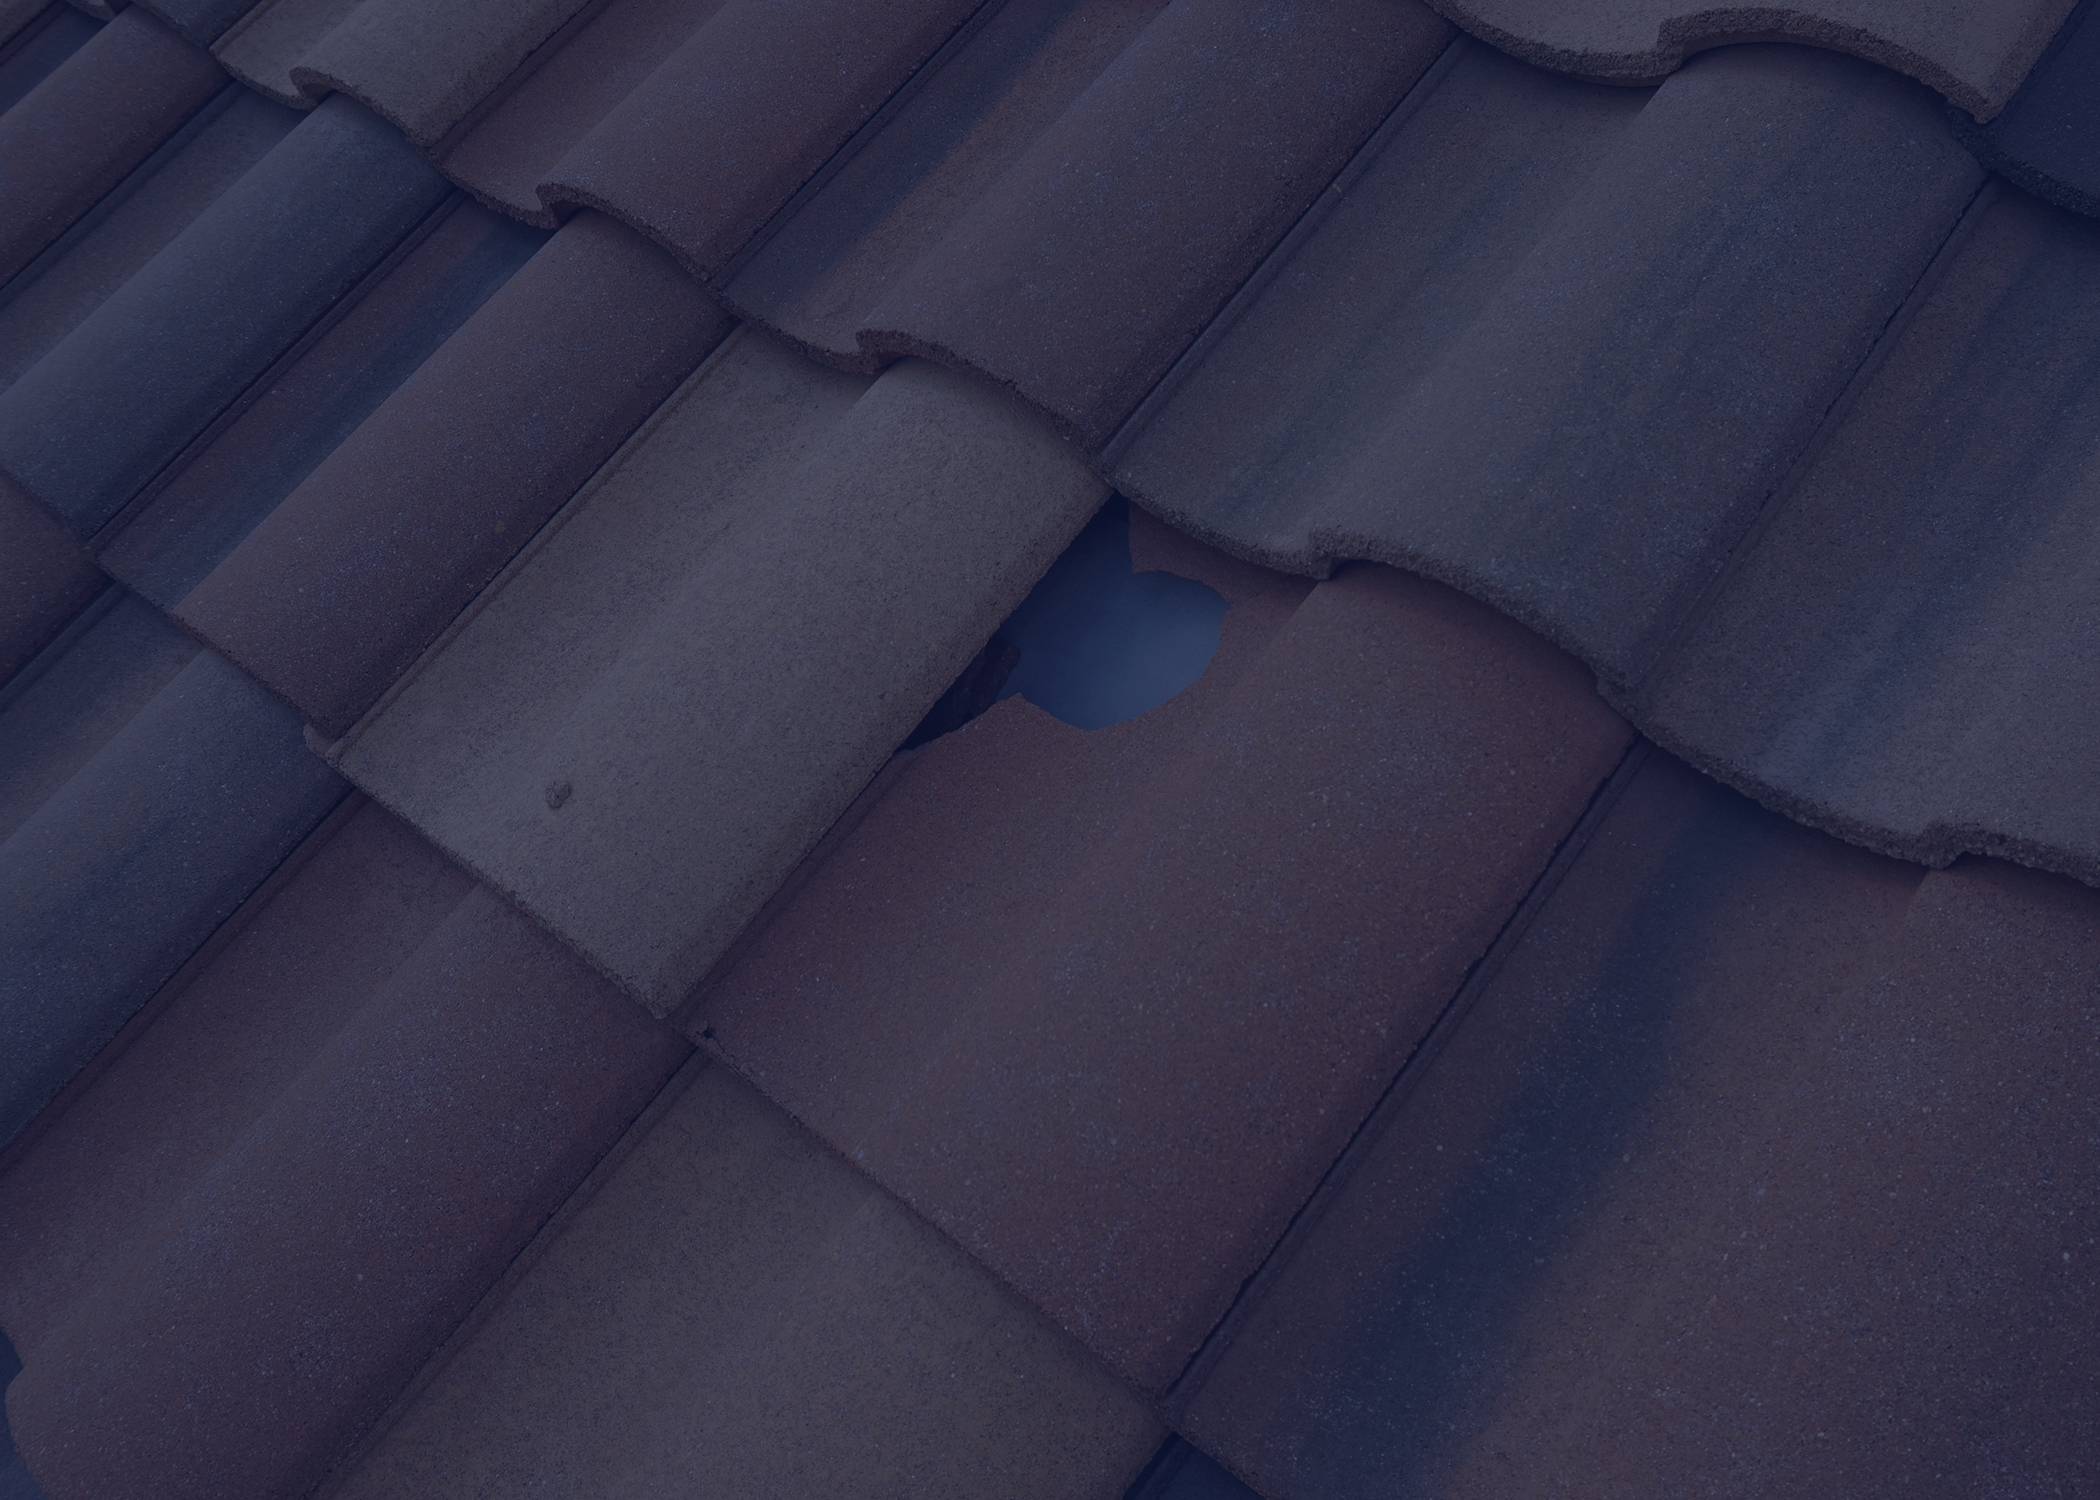 Common Distress to Concrete Tile Roofing